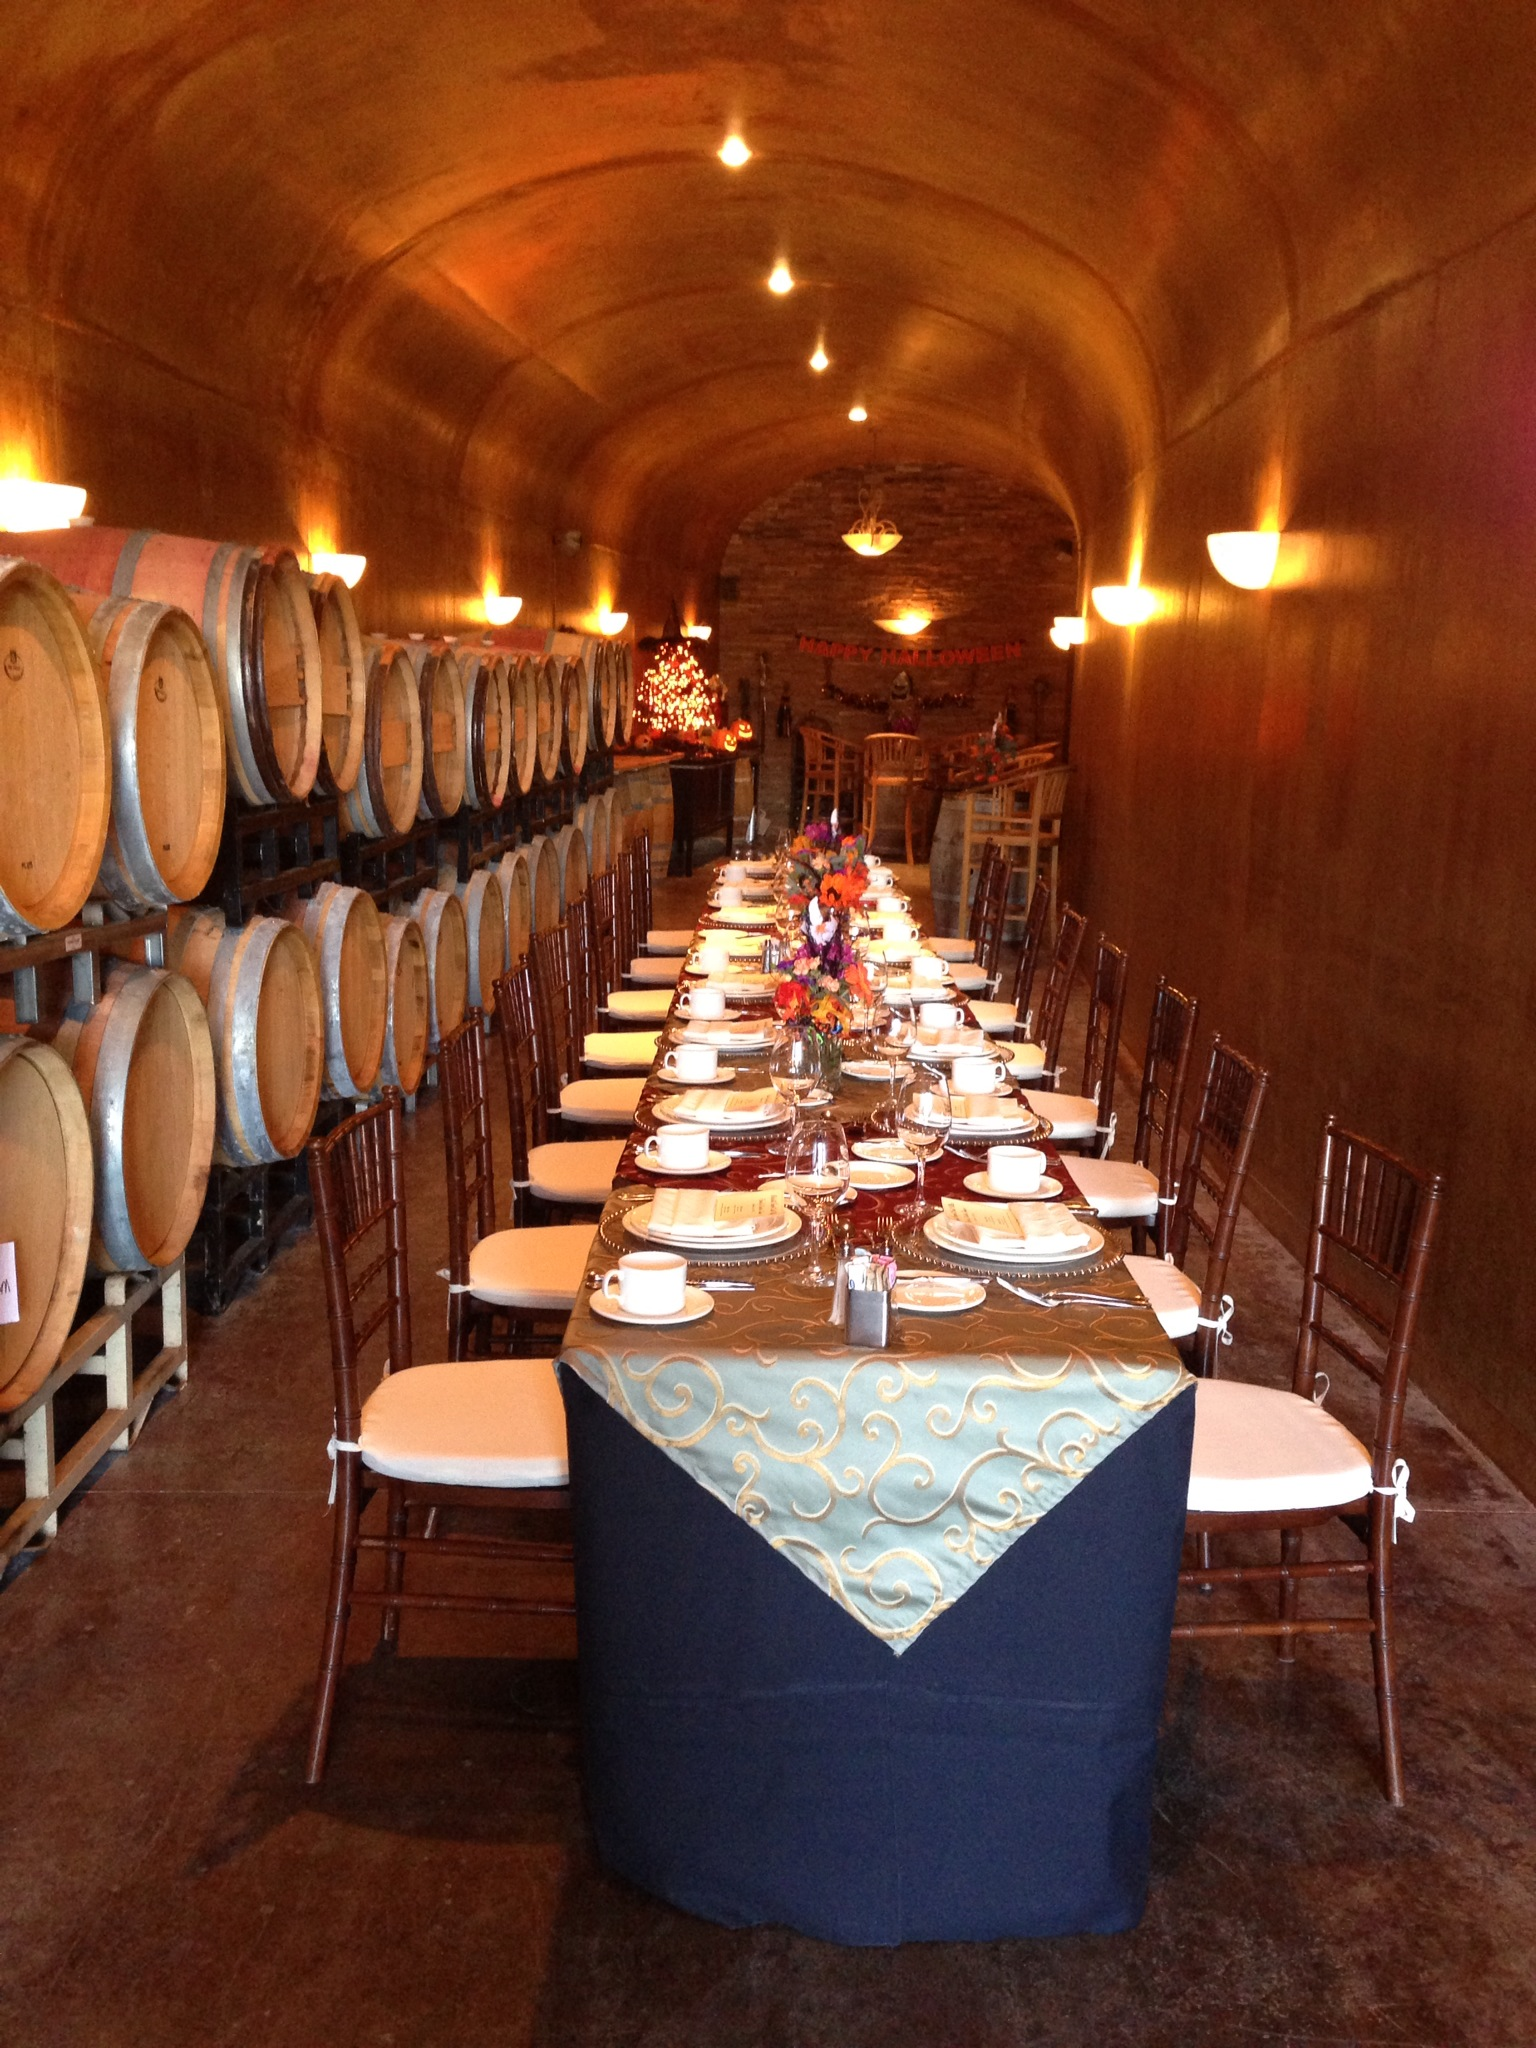 NBVW Wine Cave Table for 20 - Chivari Chairs.jpg